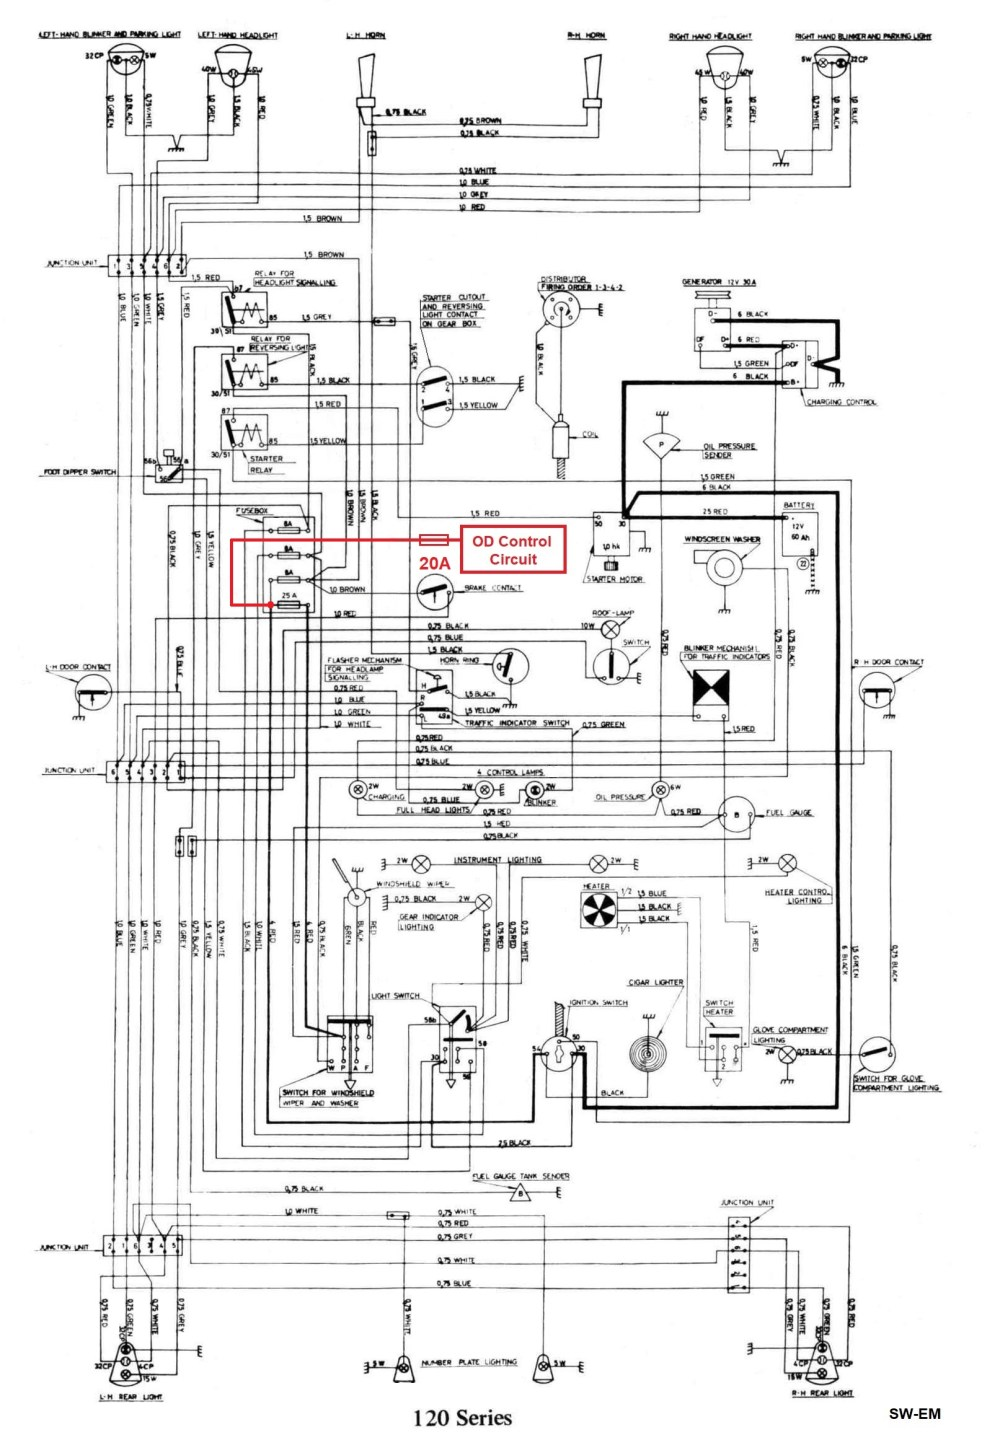 medium resolution of volvo 122 wiring diagram wiring diagram blog volvo 122 wiring diagram